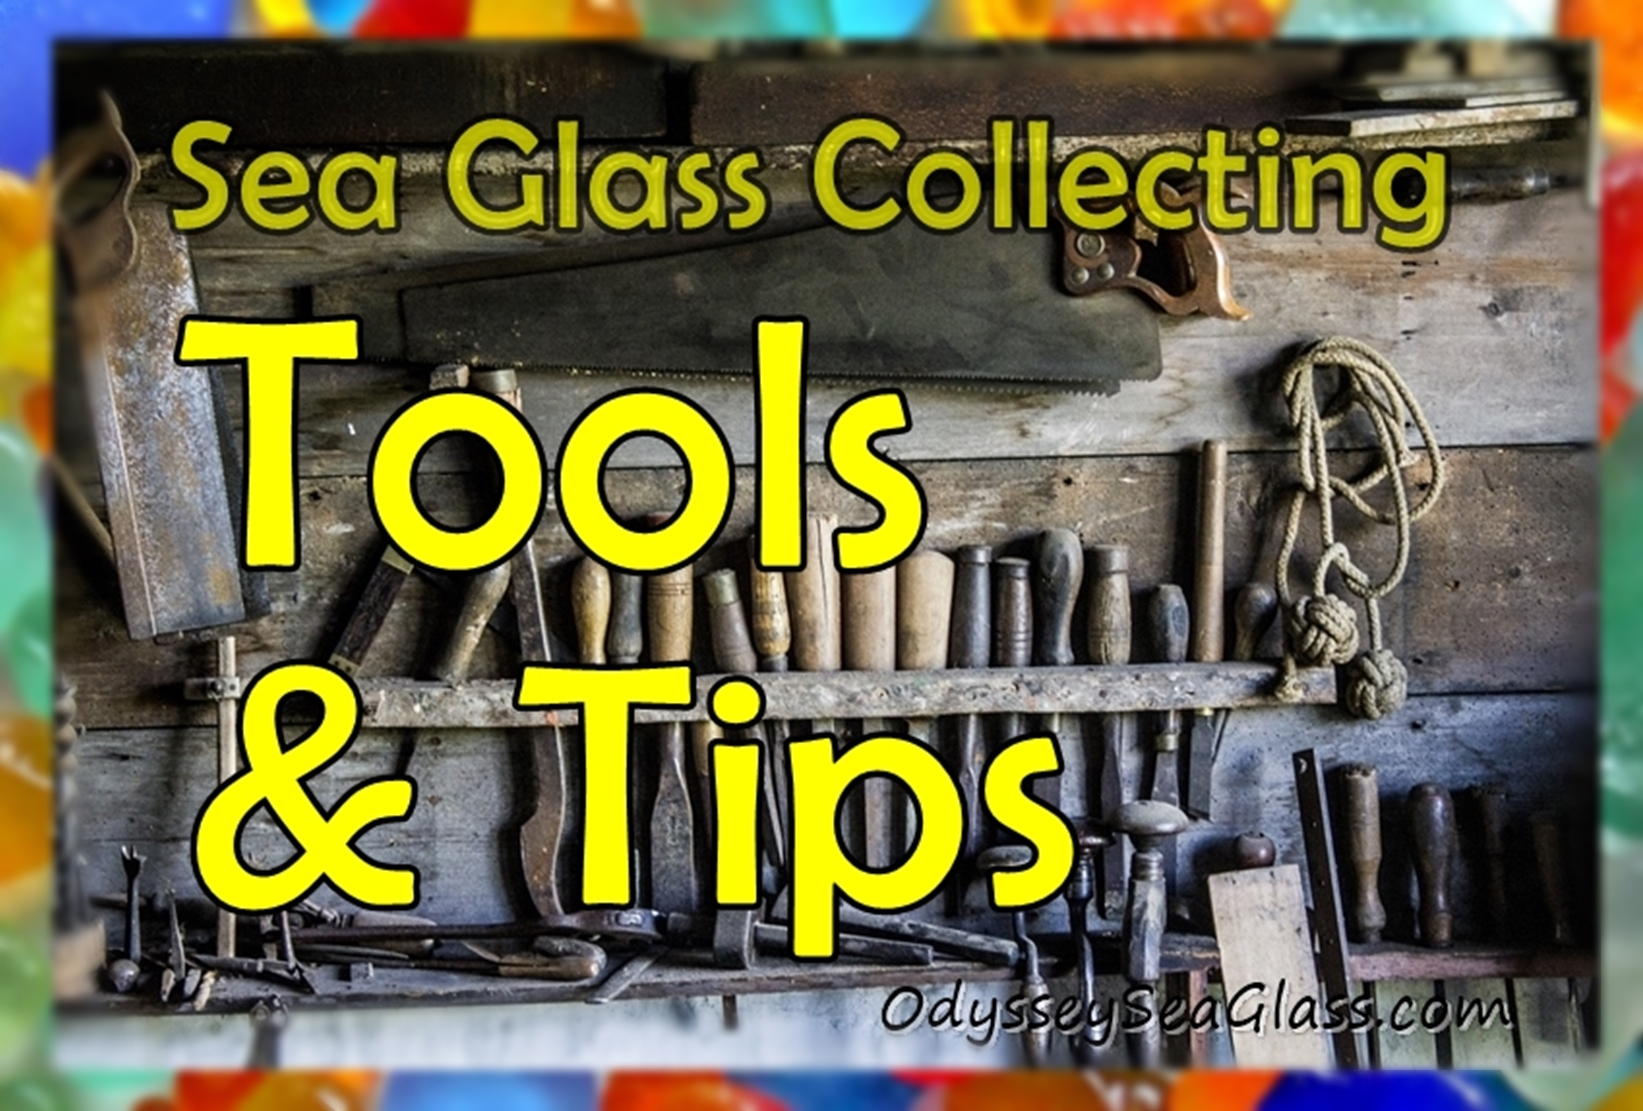 Sea Glass Collecting - Tools and Tips